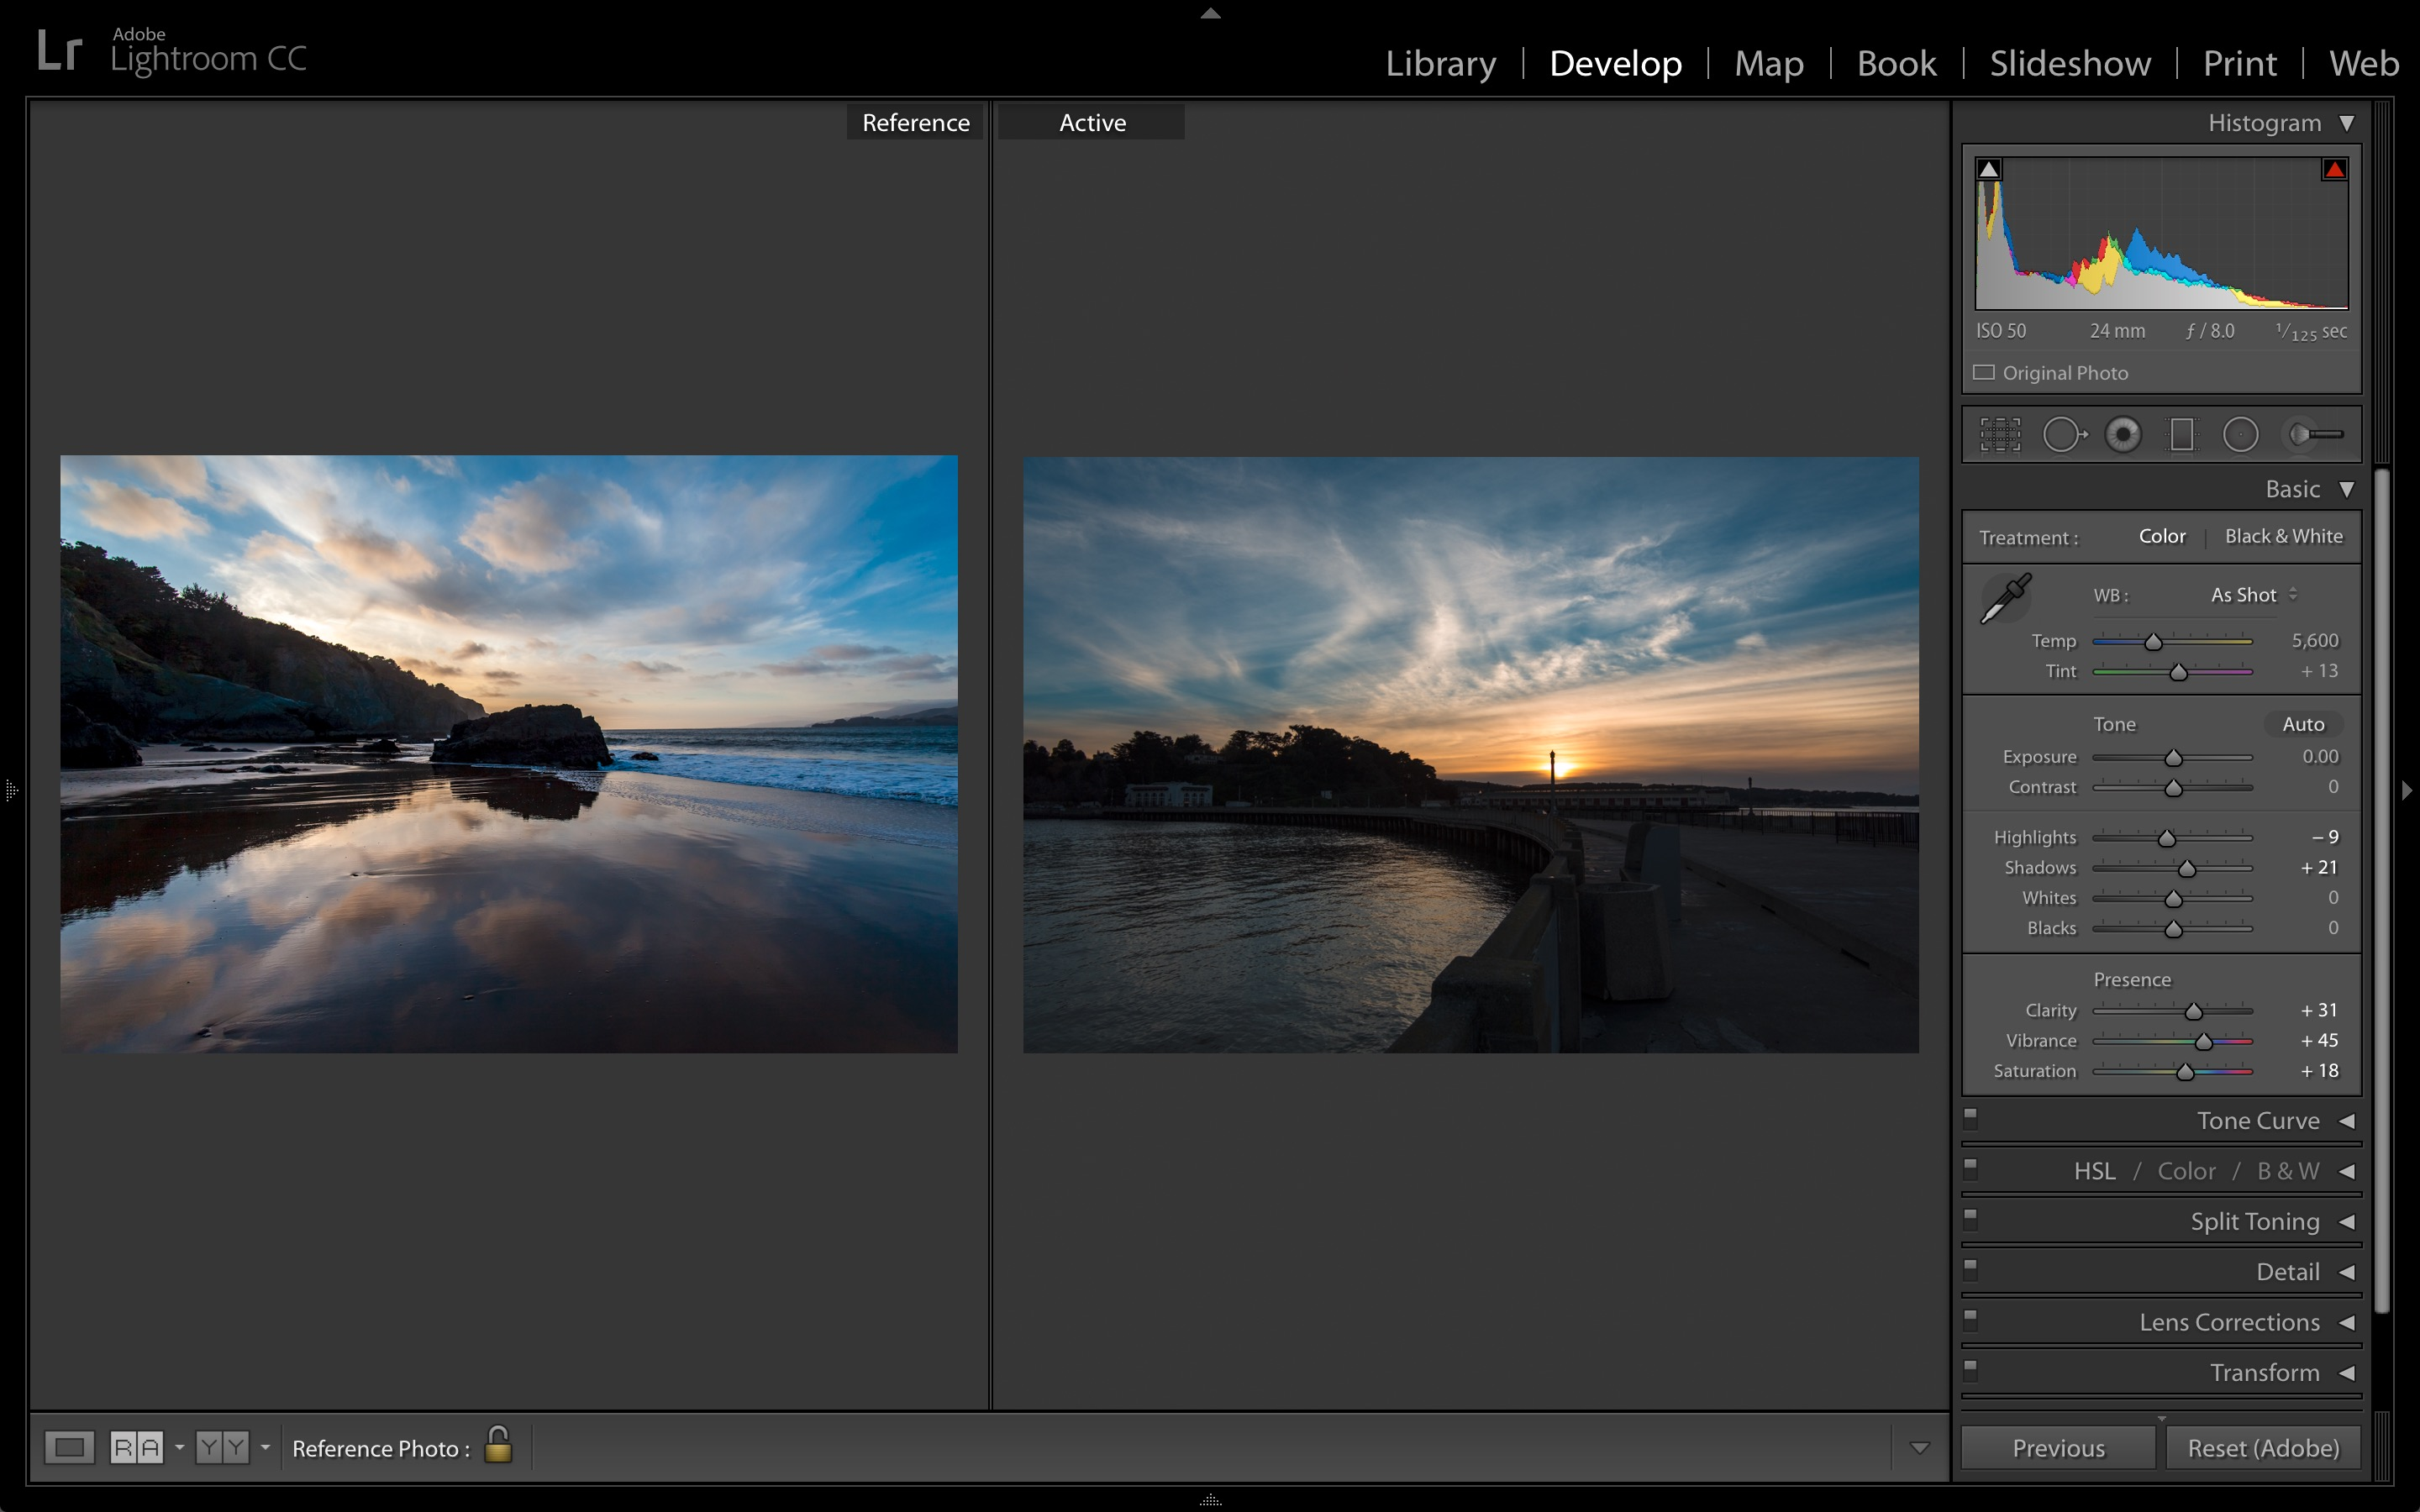 Lightroom CC 2015.8 update